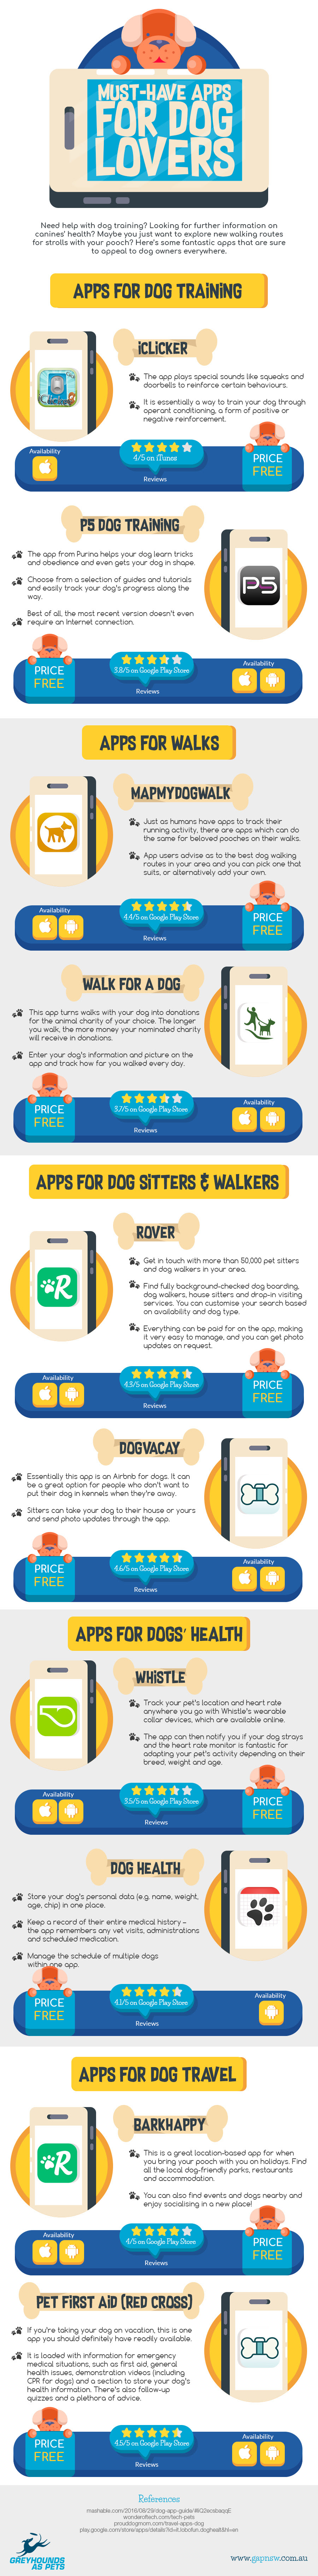 Mobile Apps for Dogs and Puppies Owners - Infographic